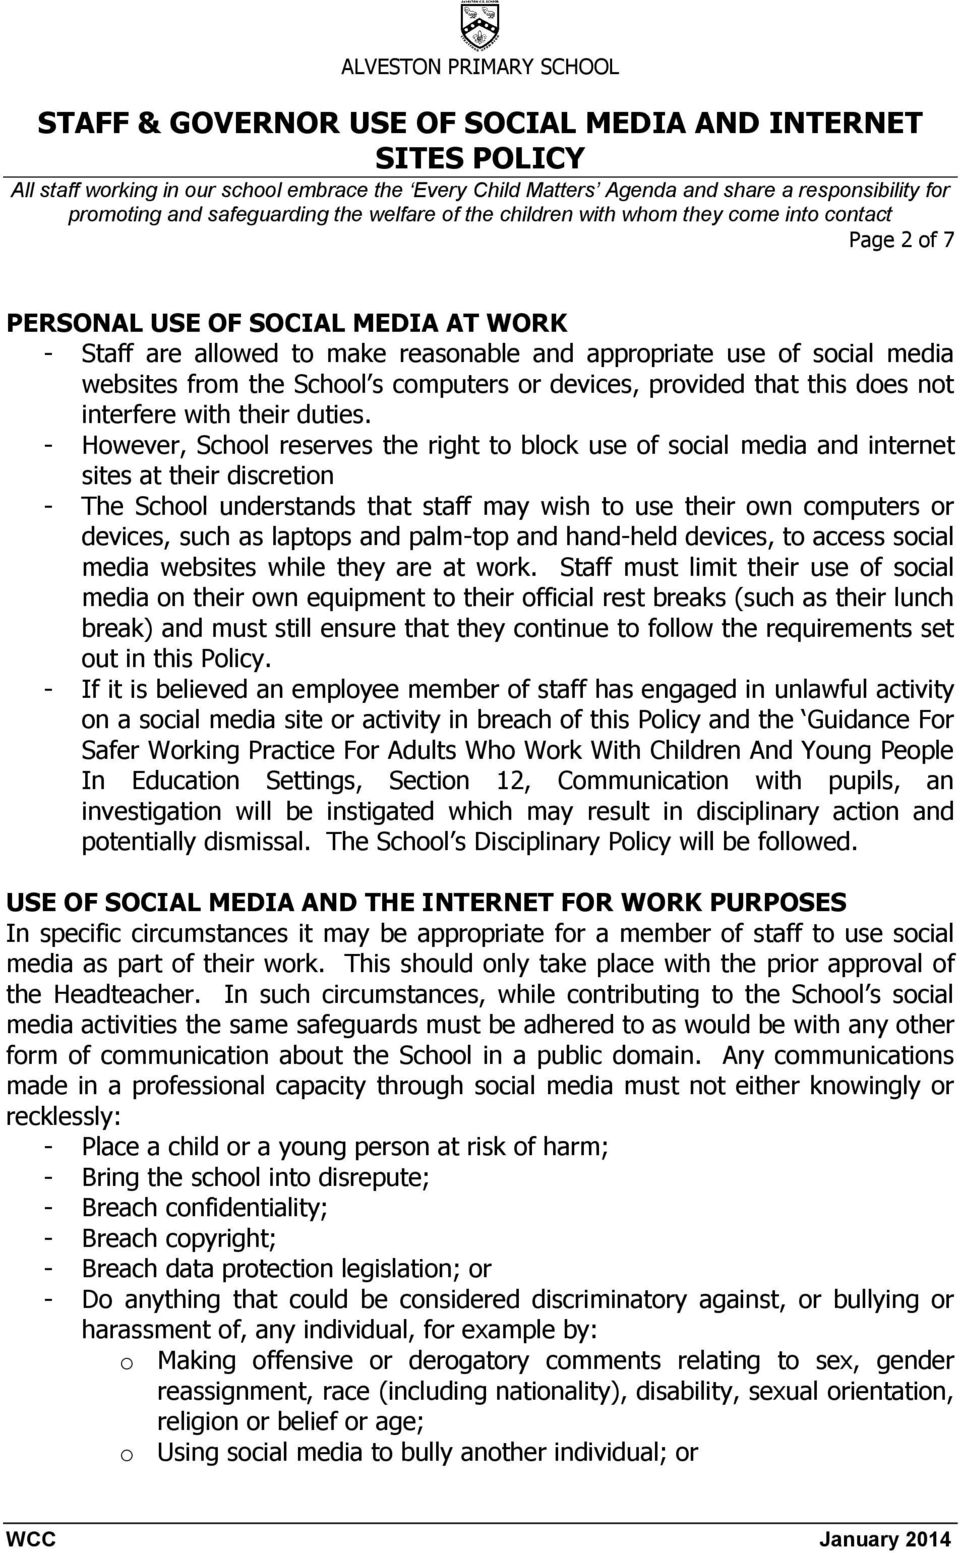 - However, School reserves the right to block use of social media and internet sites at their discretion - The School understands that staff may wish to use their own computers or devices, such as